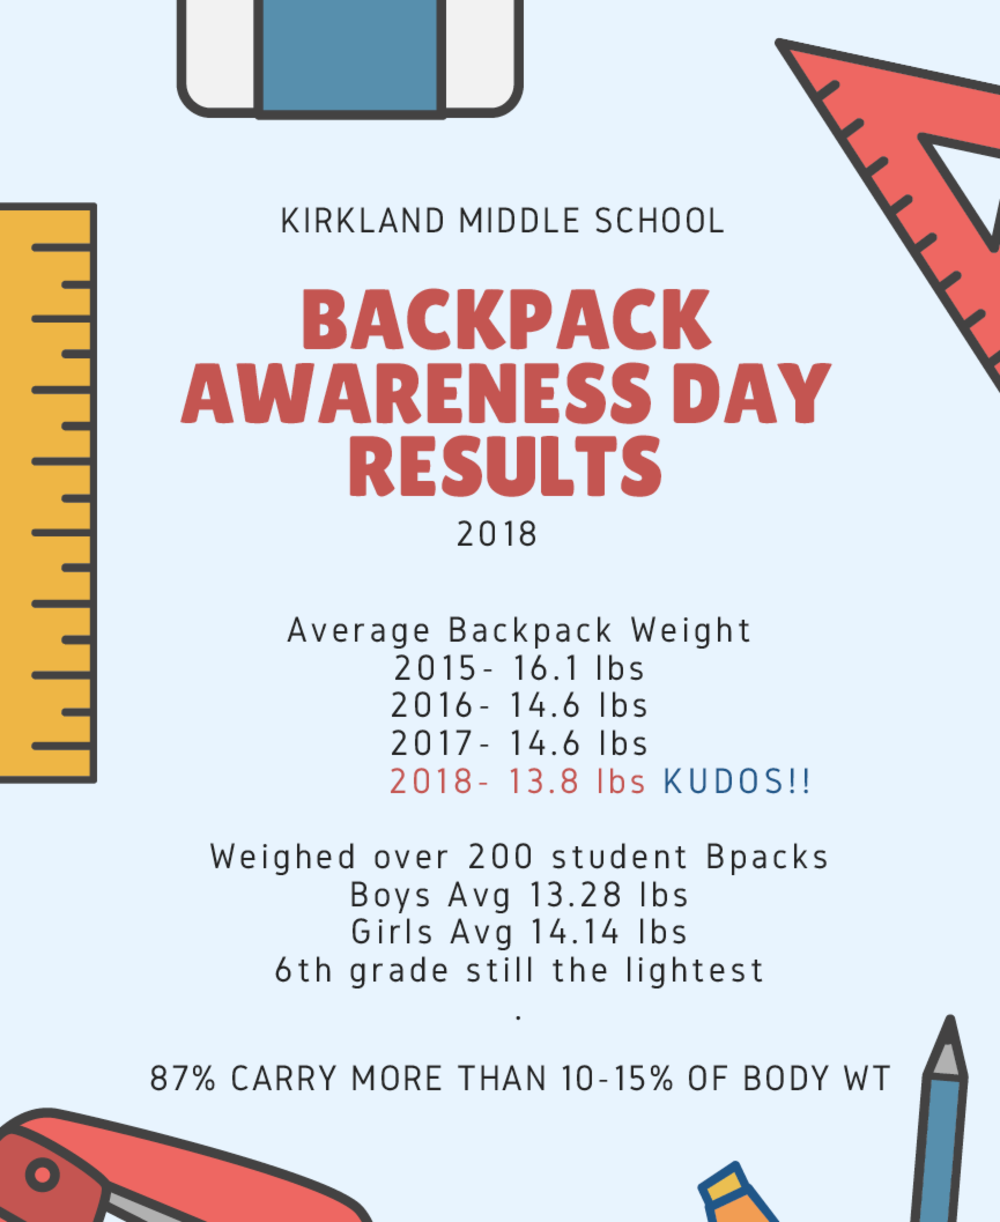 Our interventions are paying off!